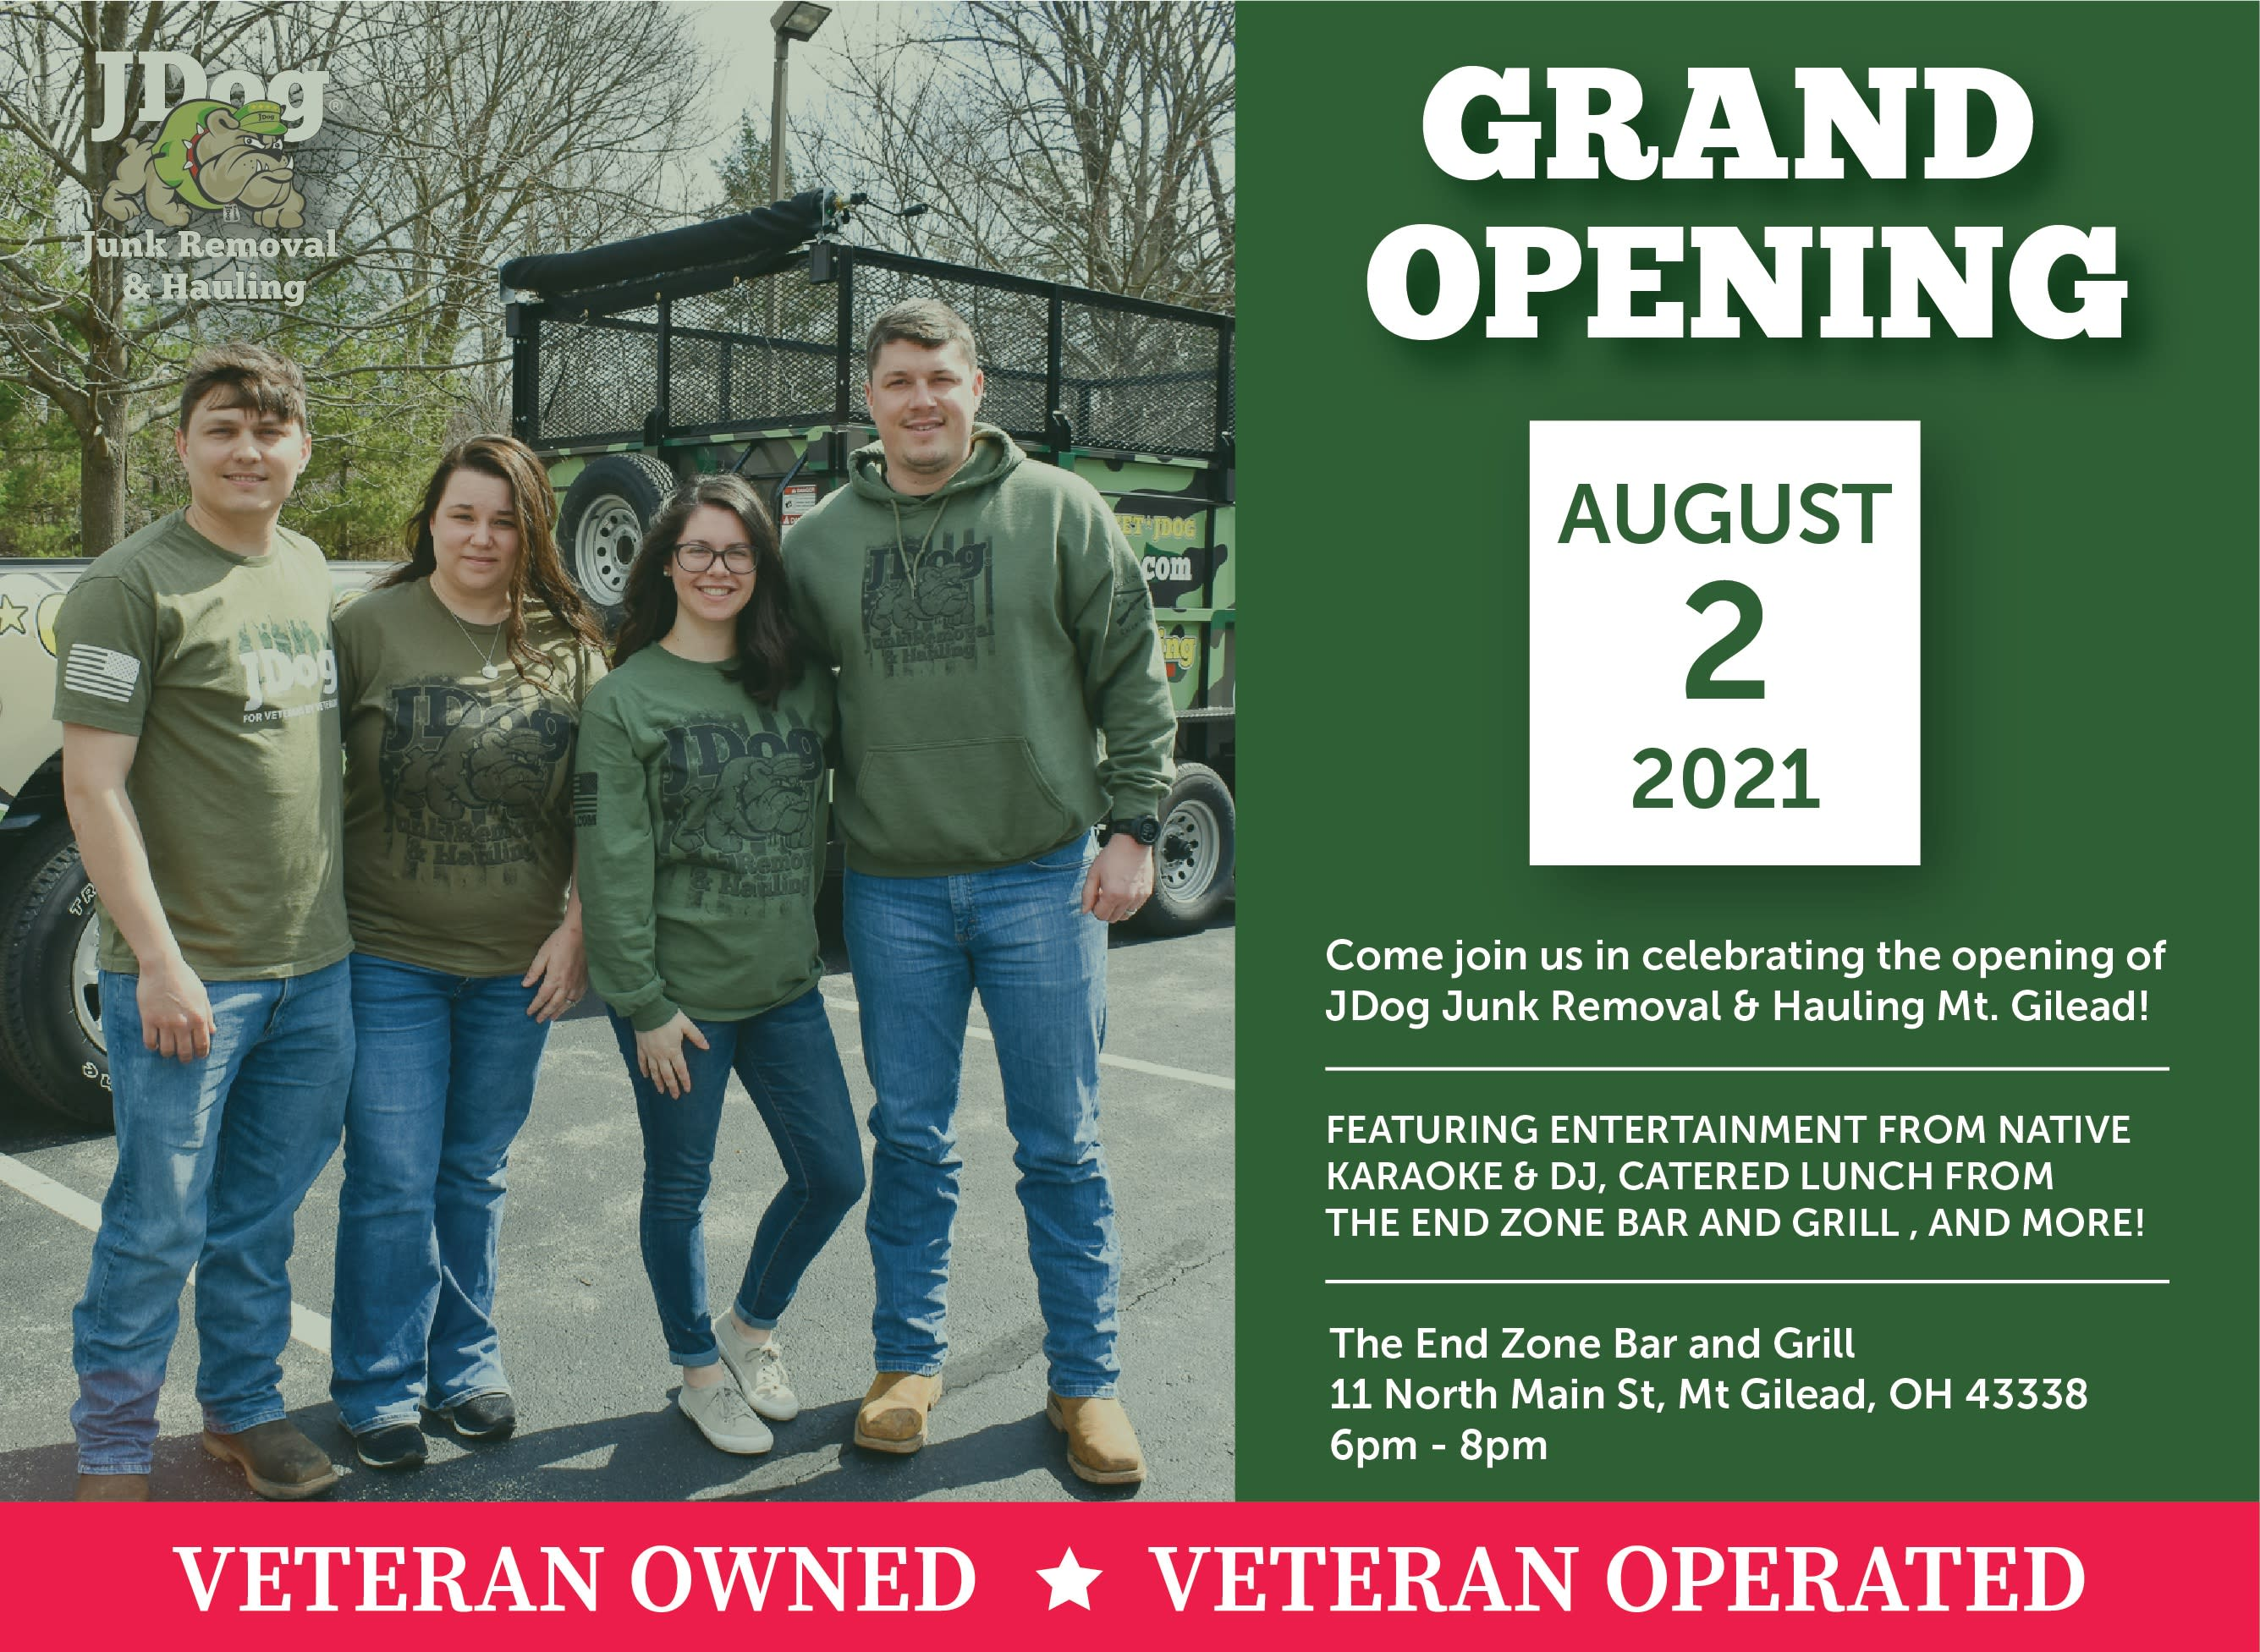 Grand Opening JDog Junk Removal and Hauling Mt Gilead August 2 2021 at 6 PM